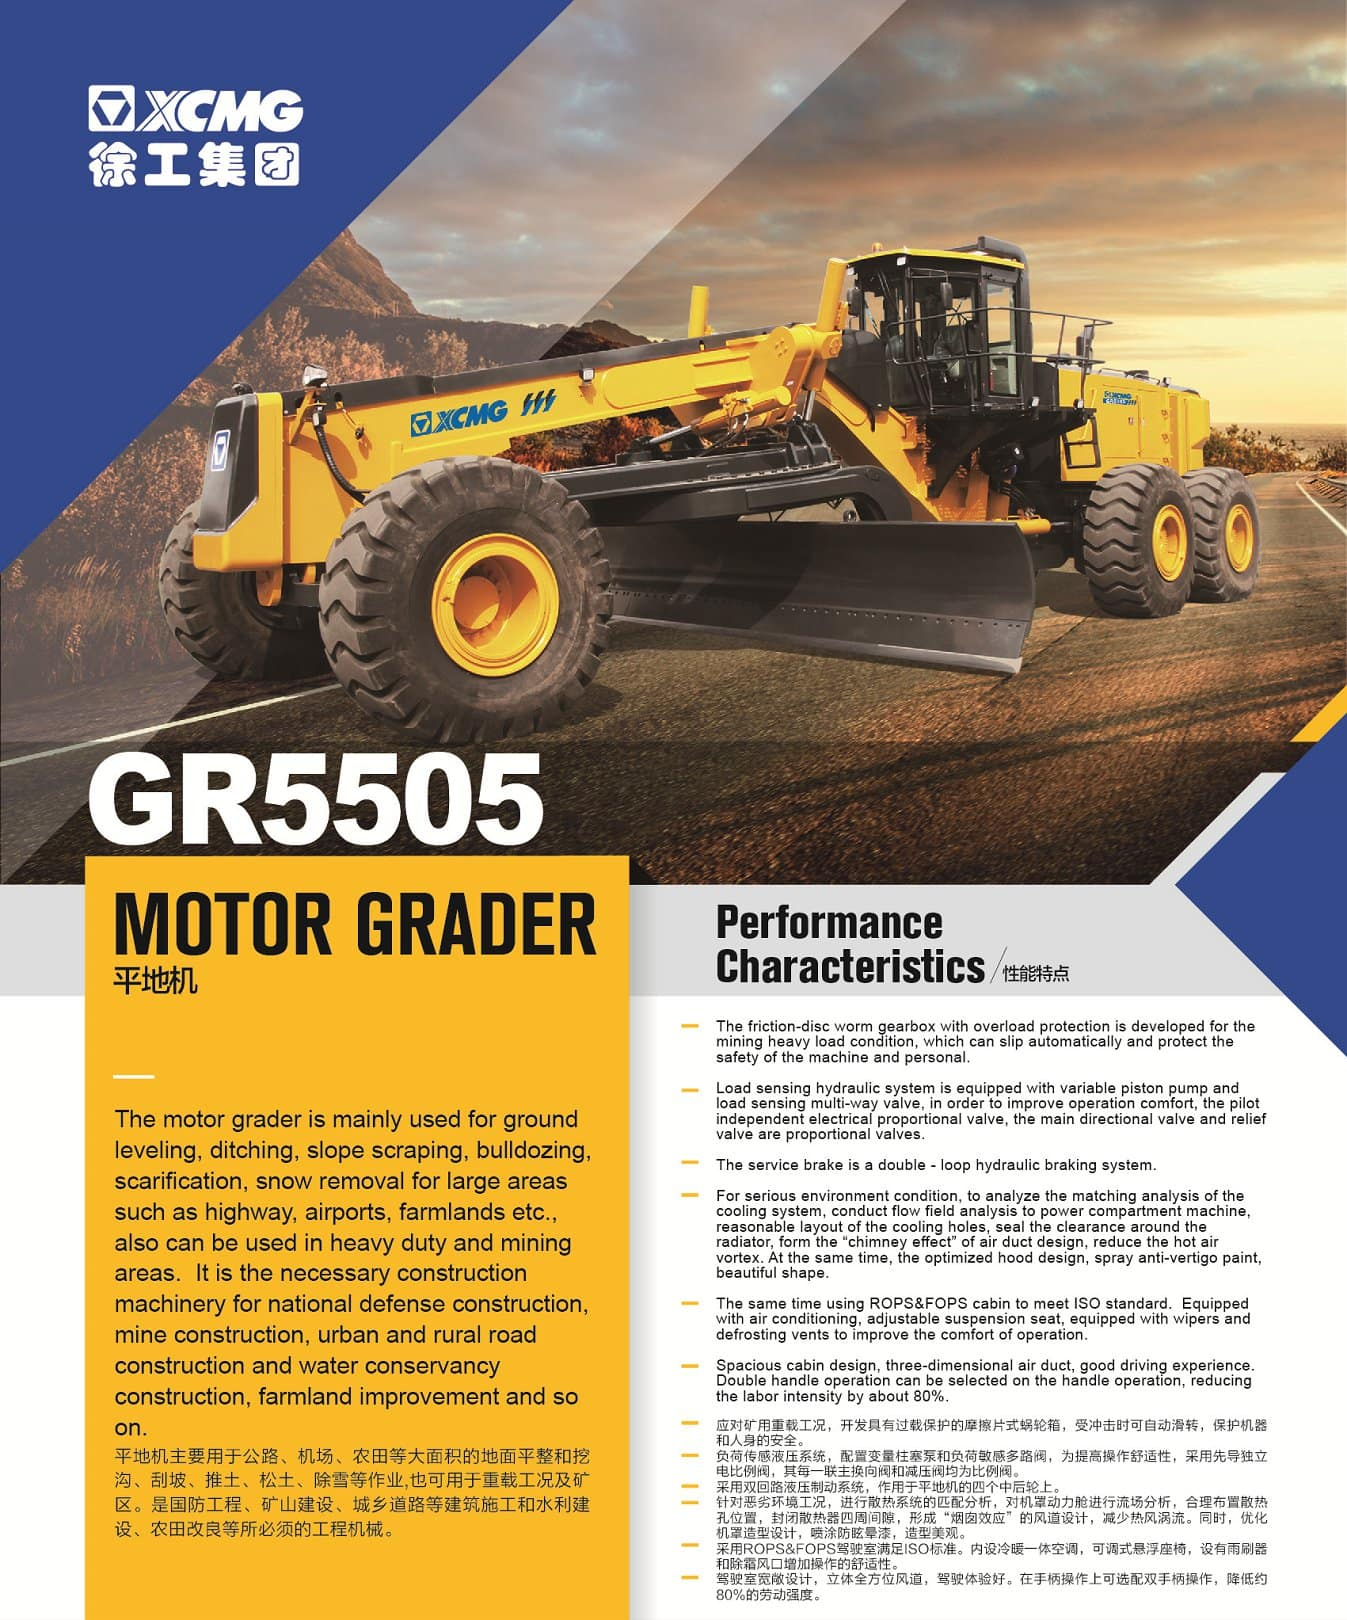 XCMG Official Motor Grader GR5505 for sale